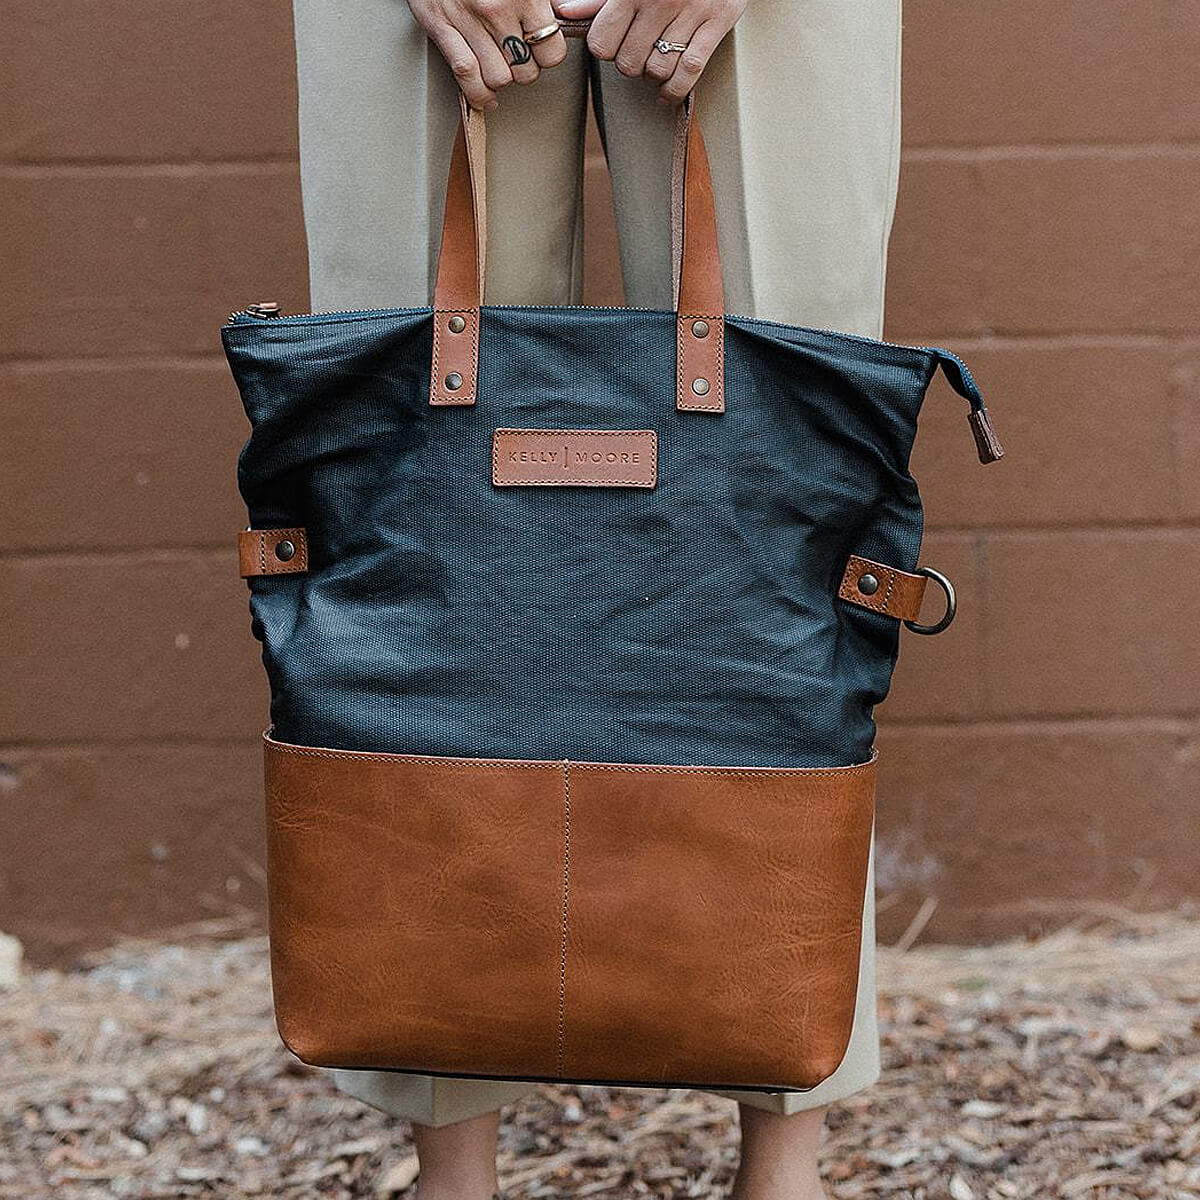 Kelly Moore - The Collins 3.0 - Canvas + Leather Backpack Tote